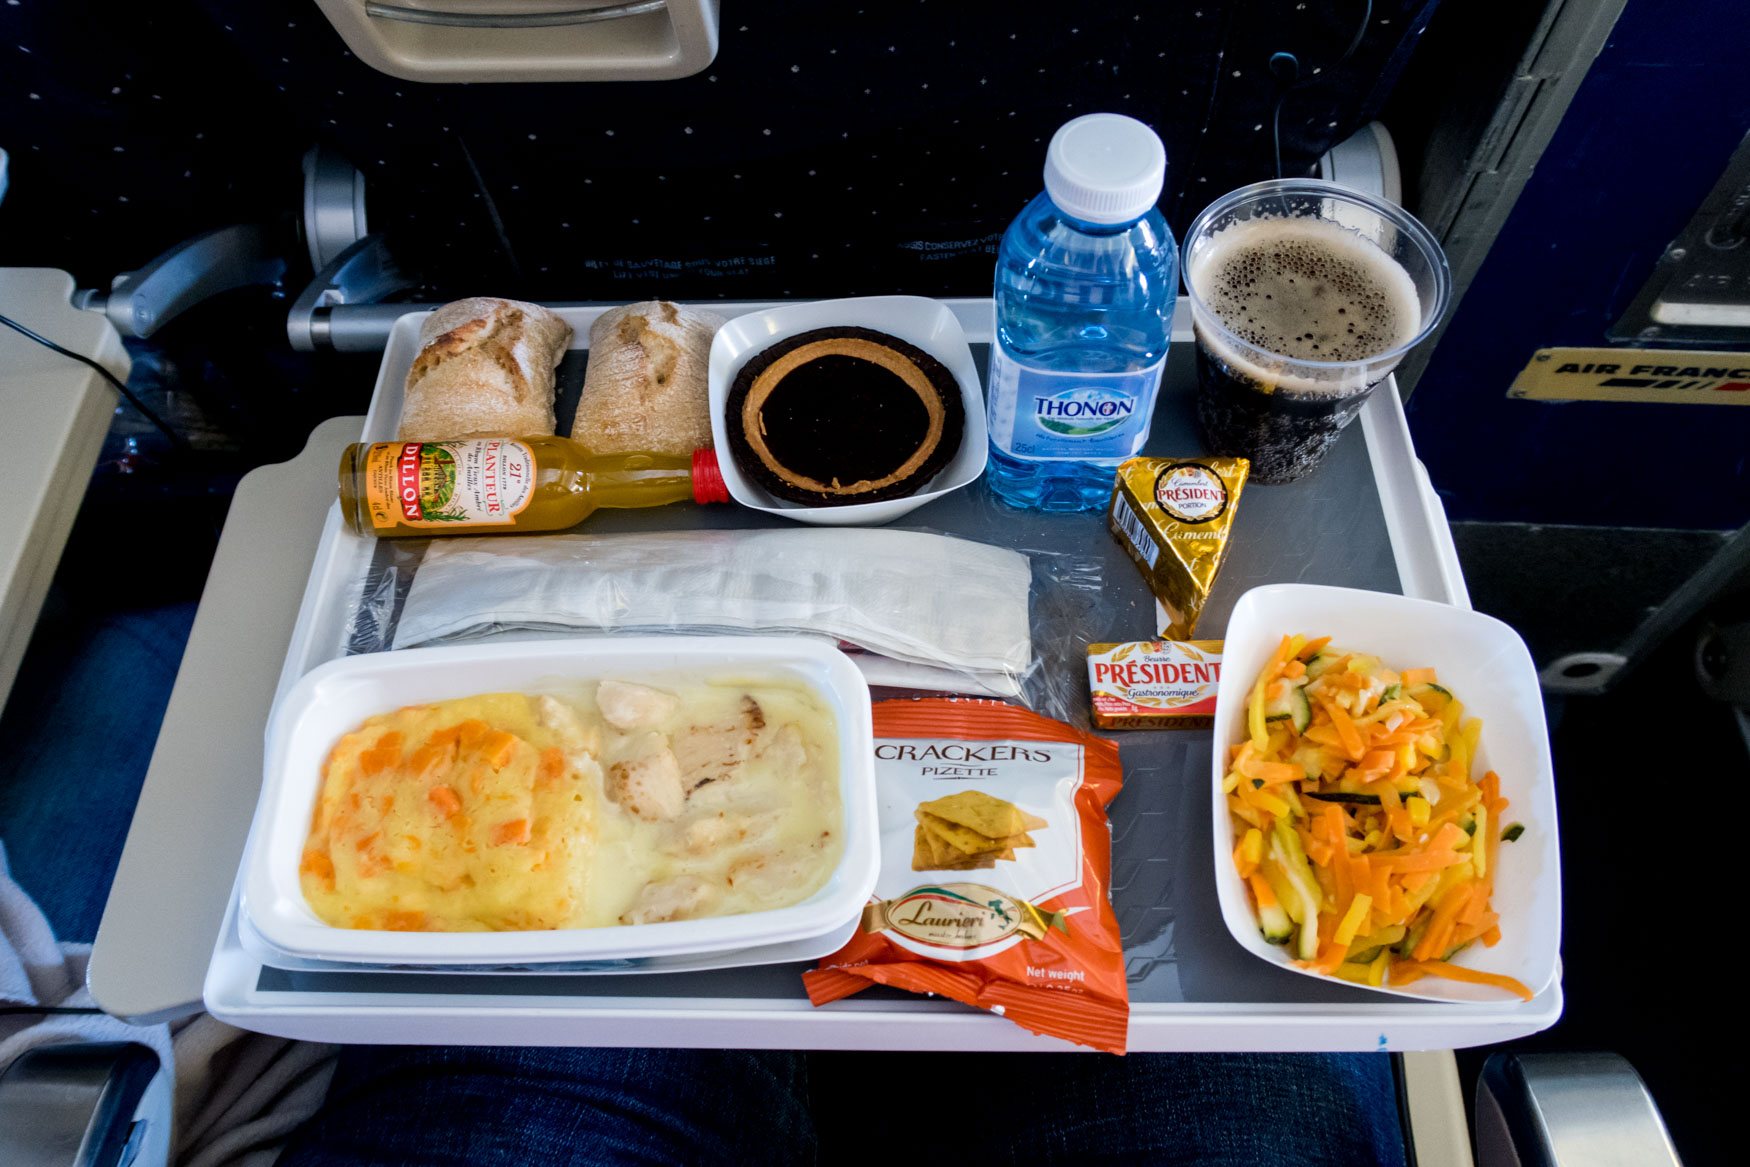 Air France Economy Class Meal